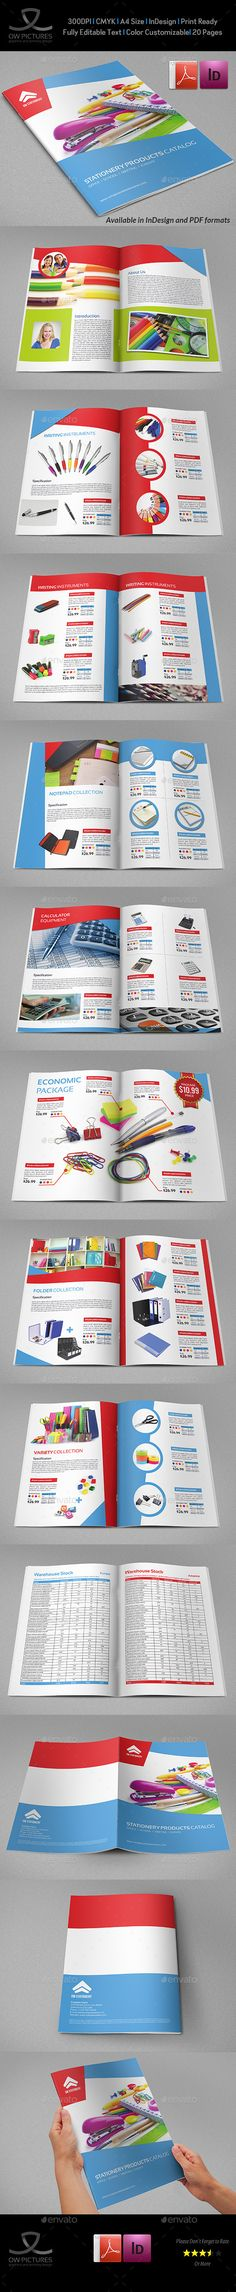 Stationery Products Catalog Brochure 20 Pages Template Indesign Indd Design Download Http